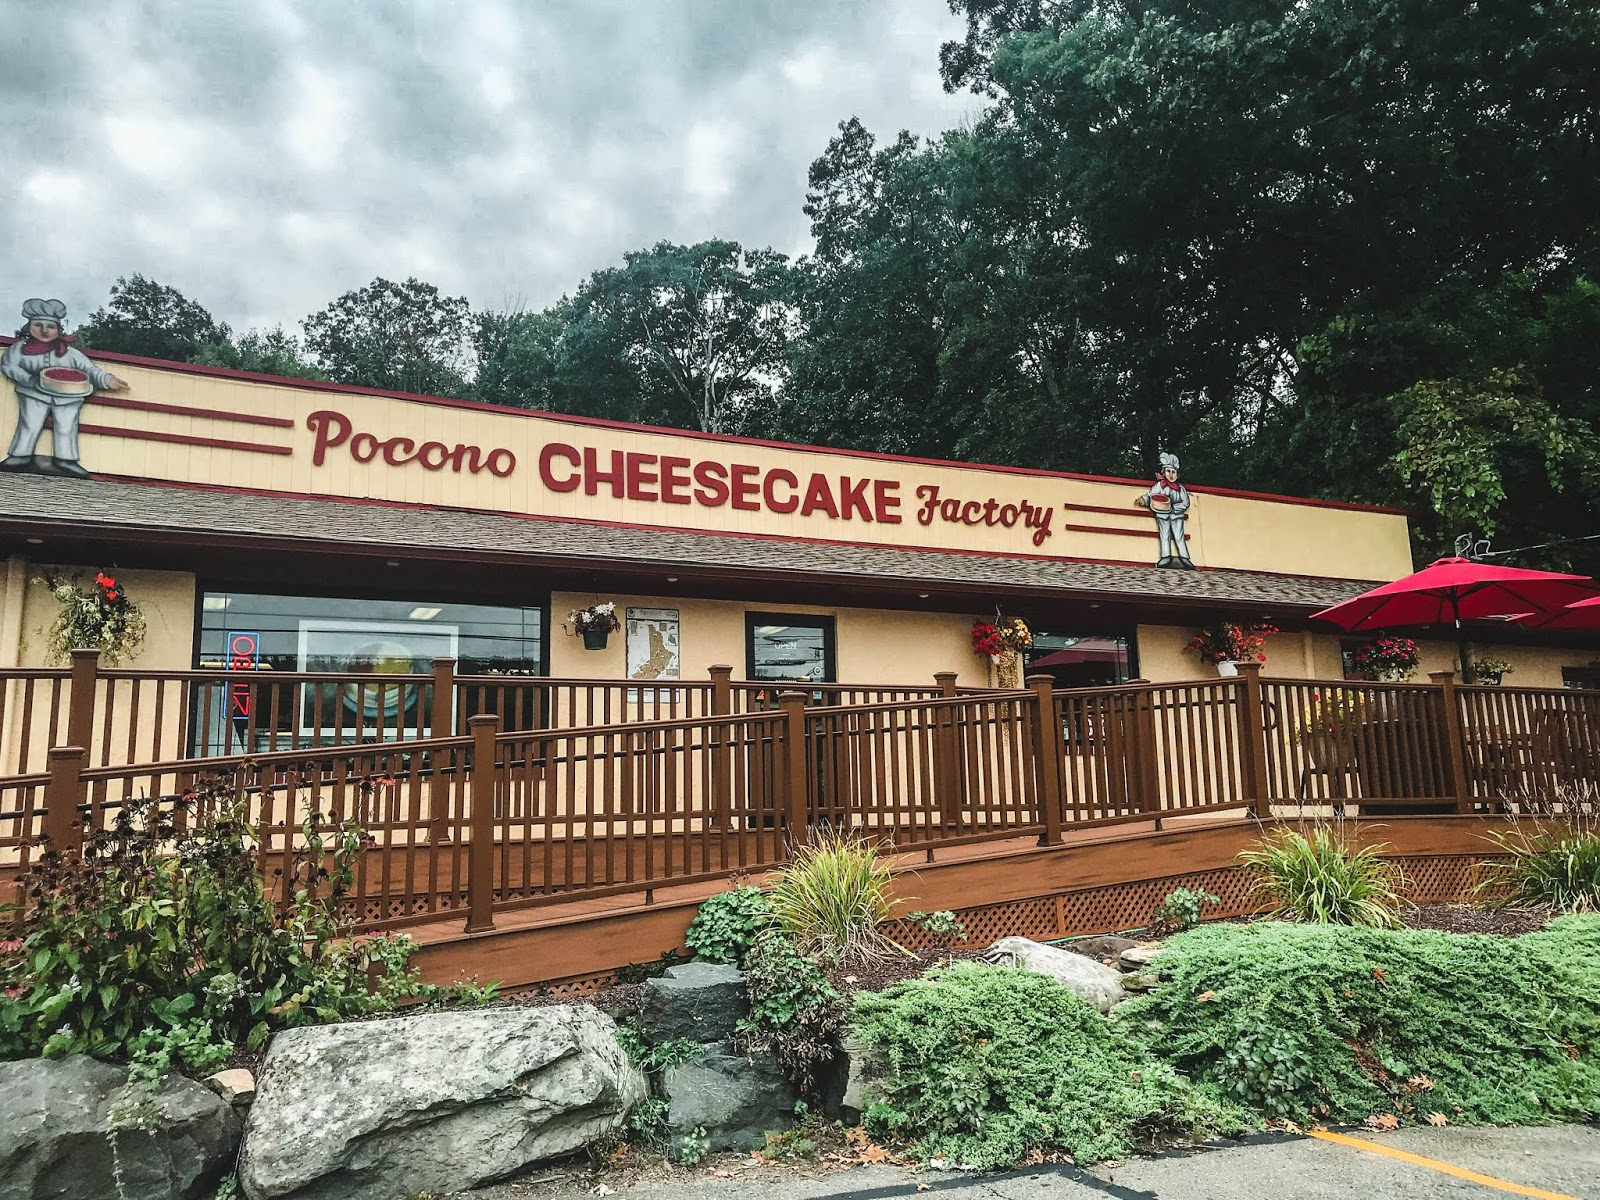 Pocono Cheesecake Factory Pennsylvania